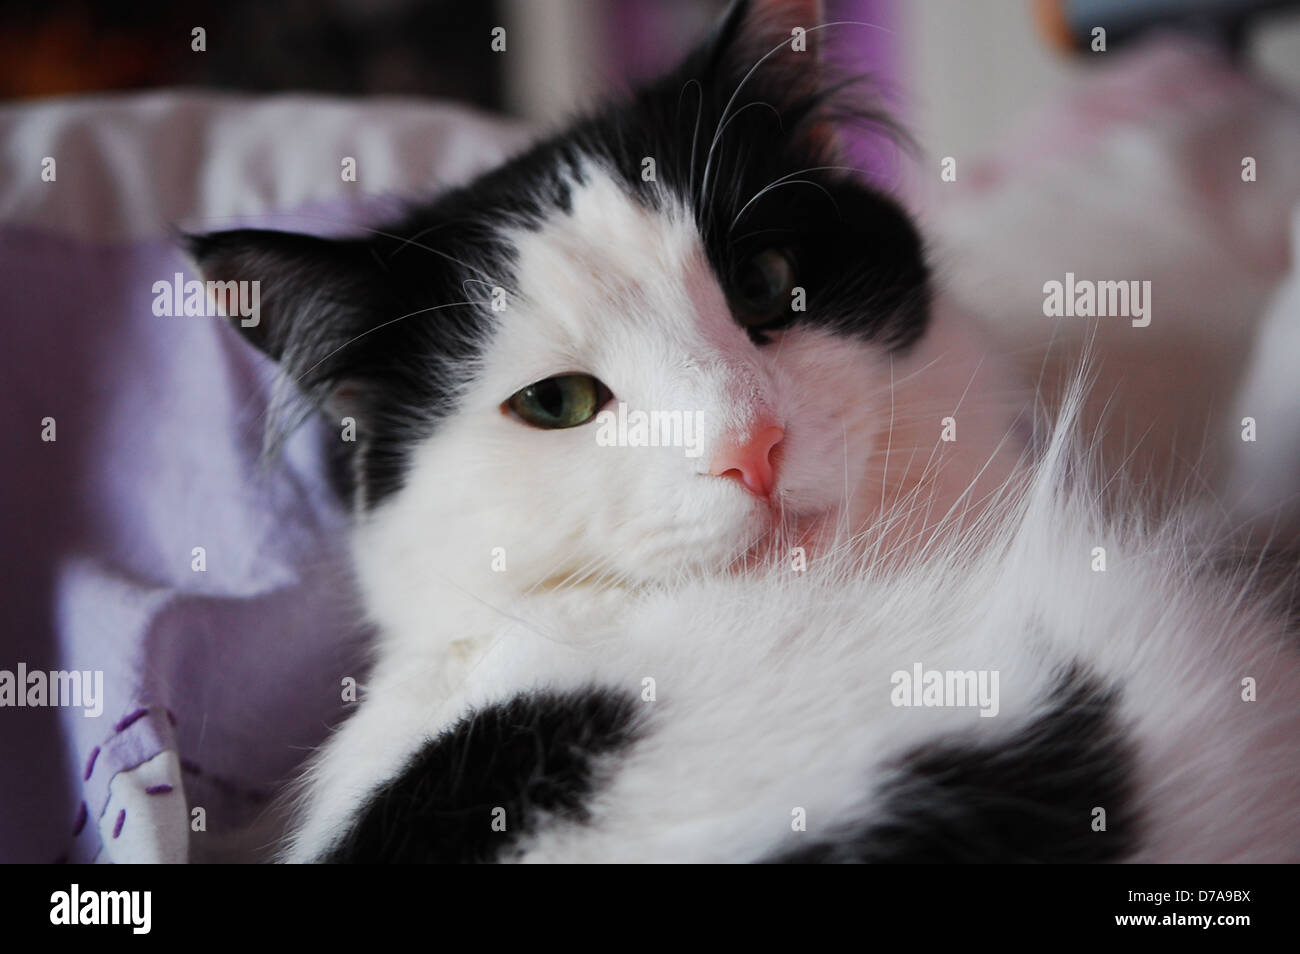 Long Haired Black White Cat High Resolution Stock Photography And Images Alamy